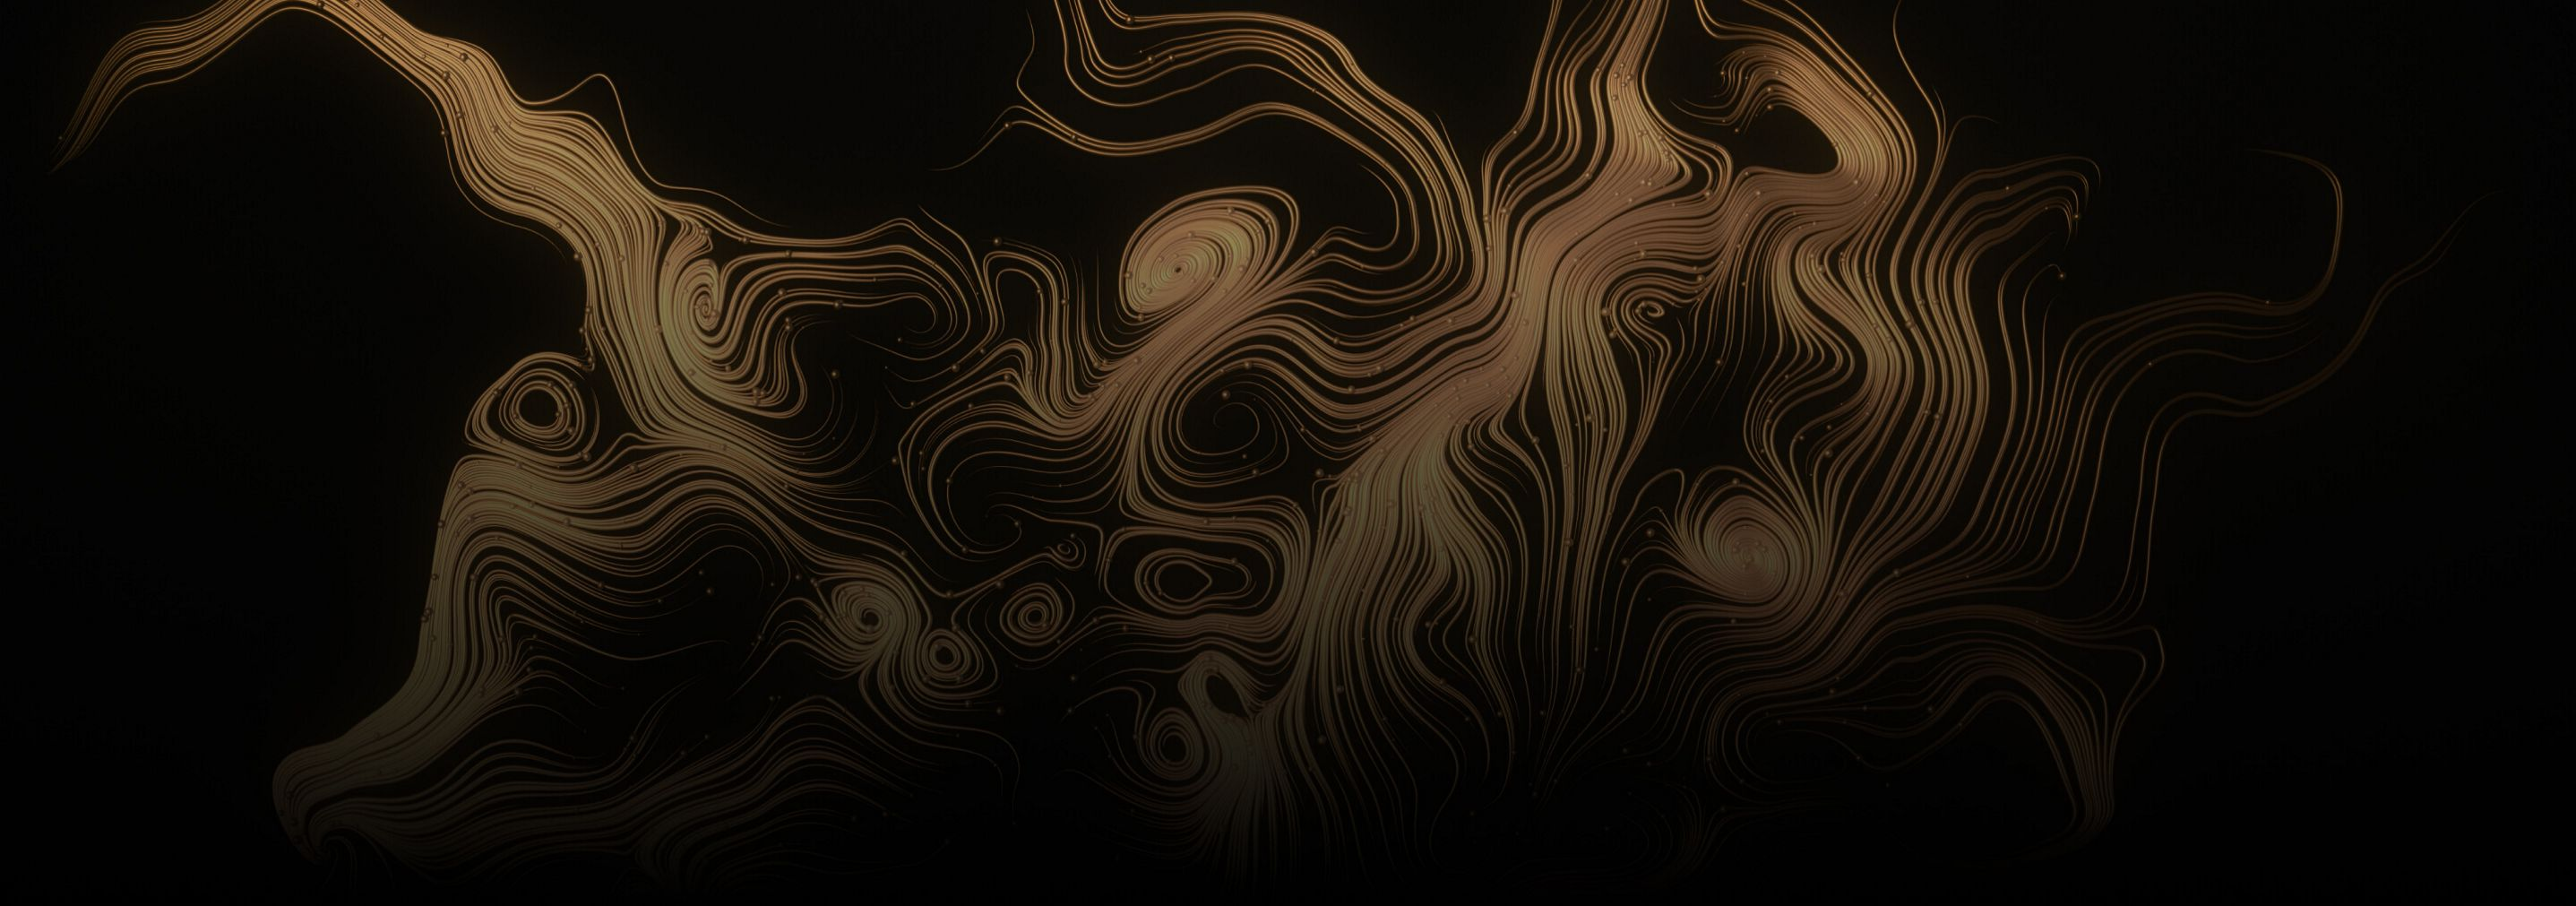 Golden tendrils on a black background.